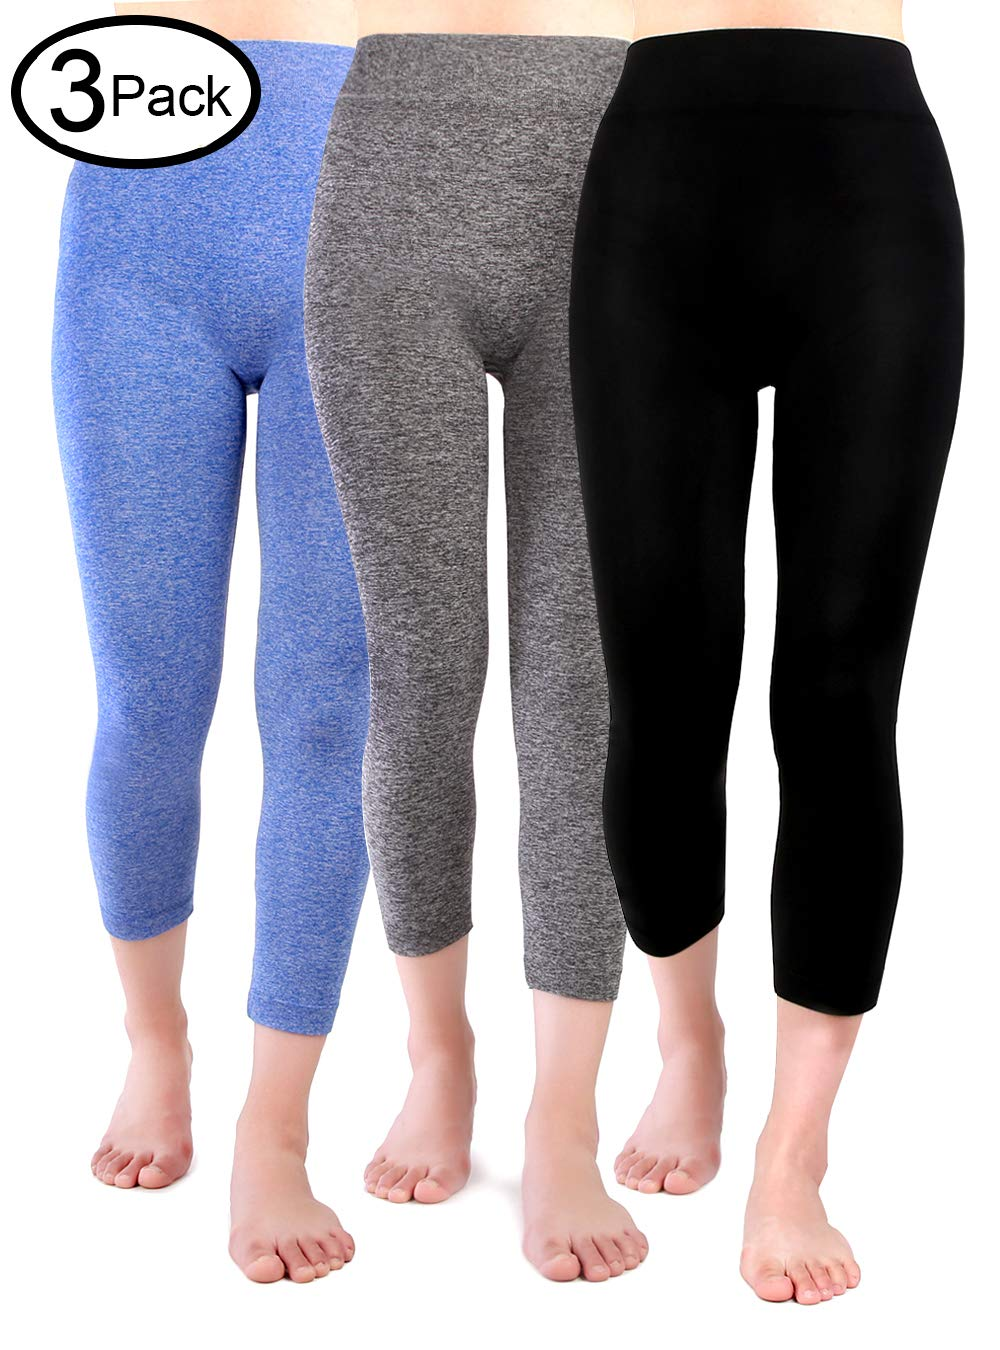 Fang Abodhu High Waist Capri Leggings for Women - Multicolor 3 Pack- One Size(S - L)